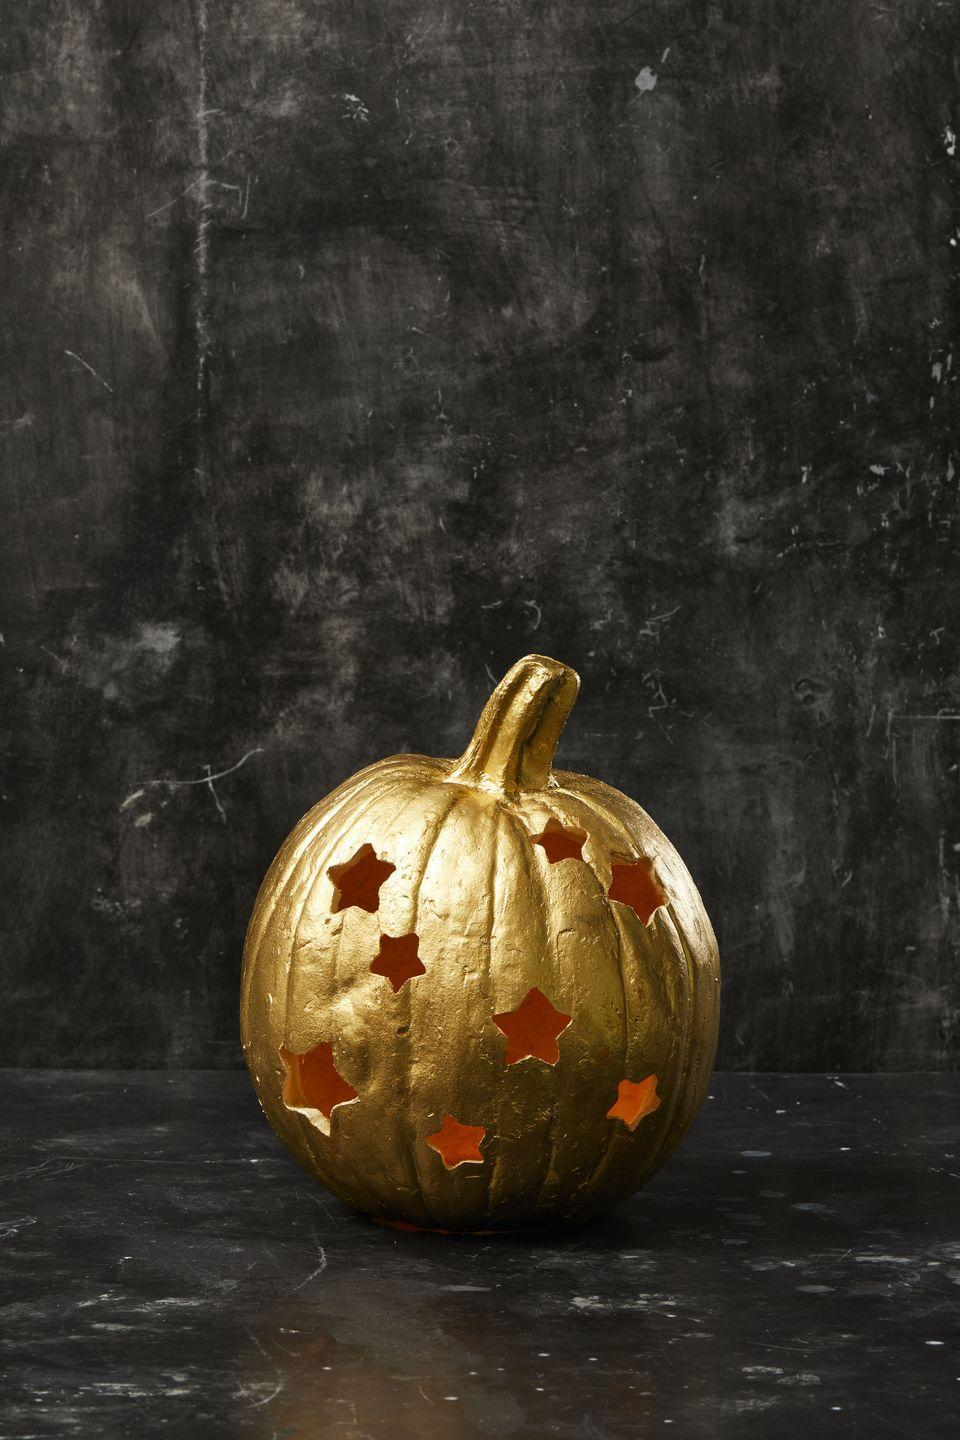 """<p>Use a rubber mallet or a dishcloth-covered hammer to gently pound a cookie cutter into a hollowed pumpkin. Remove the cut-out pieces and repeat as desired.</p><p><a class=""""link rapid-noclick-resp"""" href=""""https://www.amazon.com/Tmflexe-Stars-Cookie-Cutter-Pack/dp/B08DD7RZQQ/?tag=syn-yahoo-20&ascsubtag=%5Bartid%7C10055.g.238%5Bsrc%7Cyahoo-us"""" rel=""""nofollow noopener"""" target=""""_blank"""" data-ylk=""""slk:SHOP COOKIE CUTTERS"""">SHOP COOKIE CUTTERS</a></p>"""